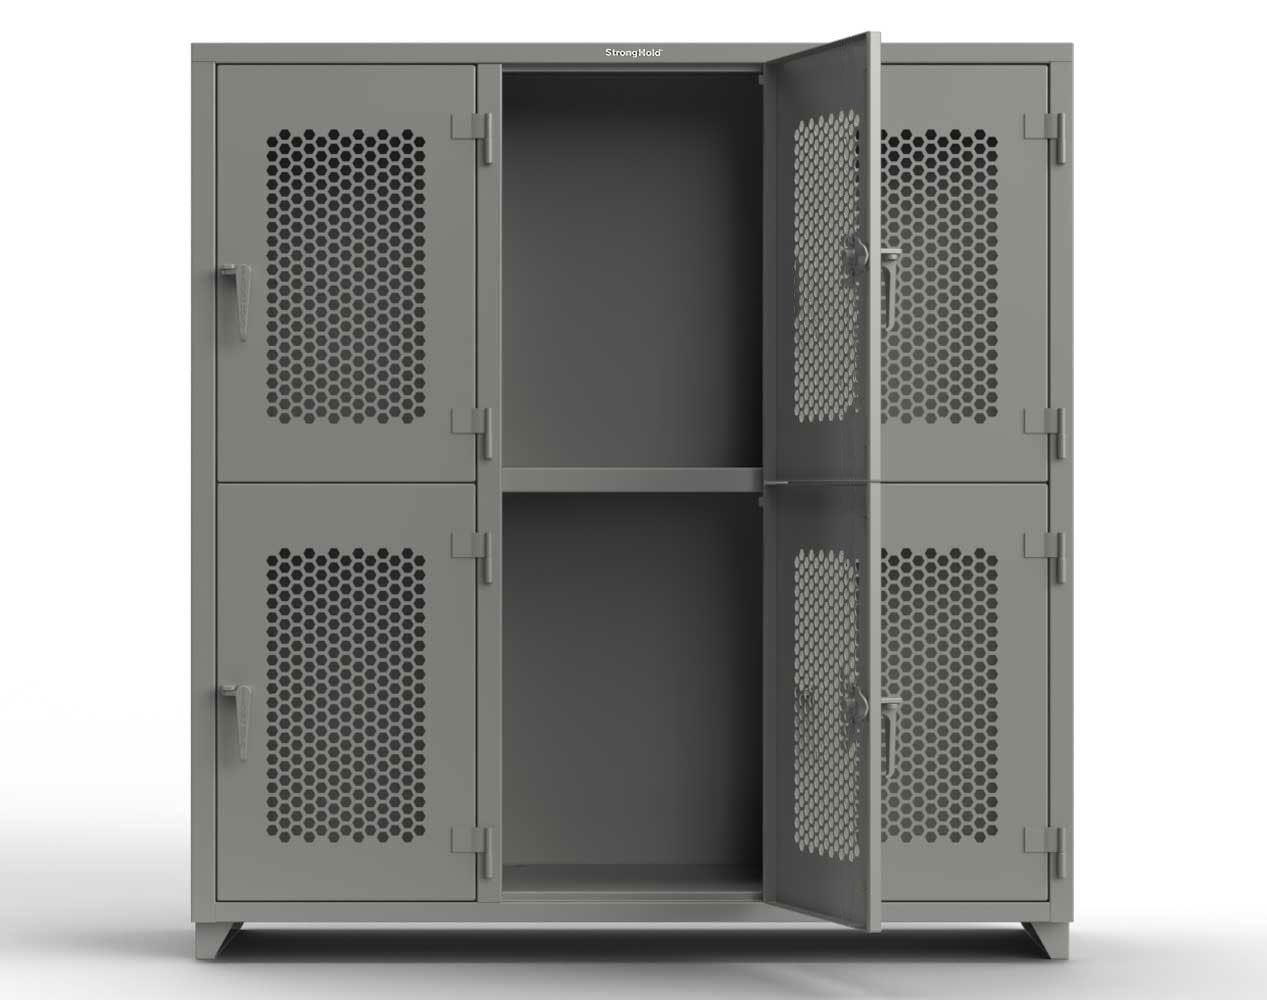 Extra Heavy Duty 14 GA Double-Tier Ventilated Locker, 6 Compartments – 72 in. W x 24 in. D x 75 in. H